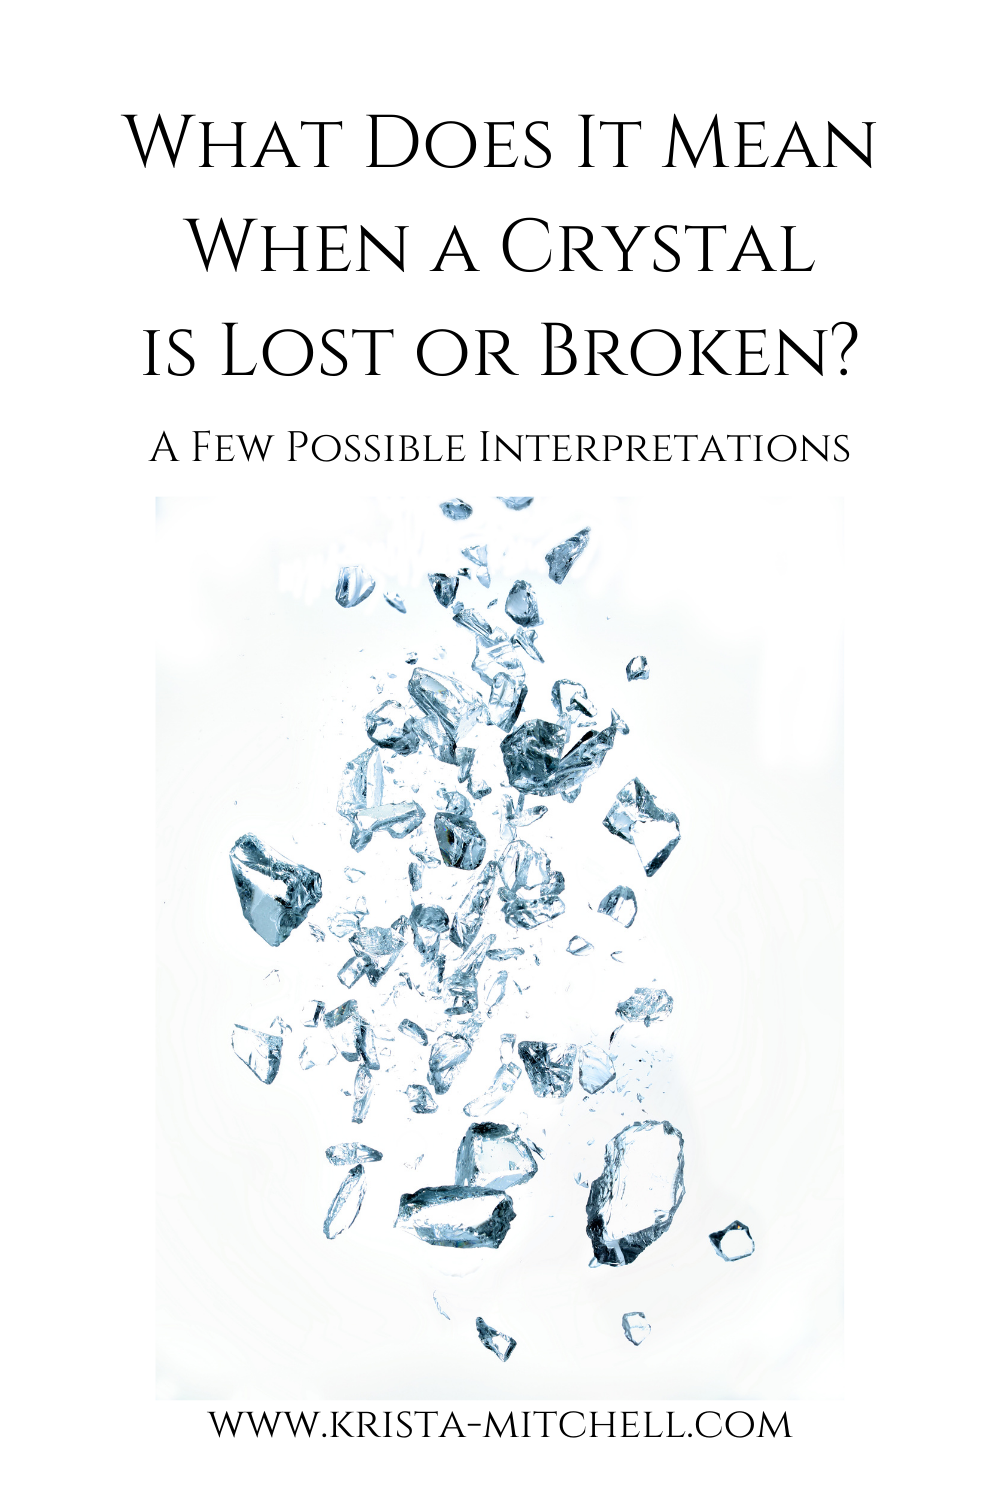 What Does it Mean When a Crystal is Lost or Broken? / www.krista-mitchell.com